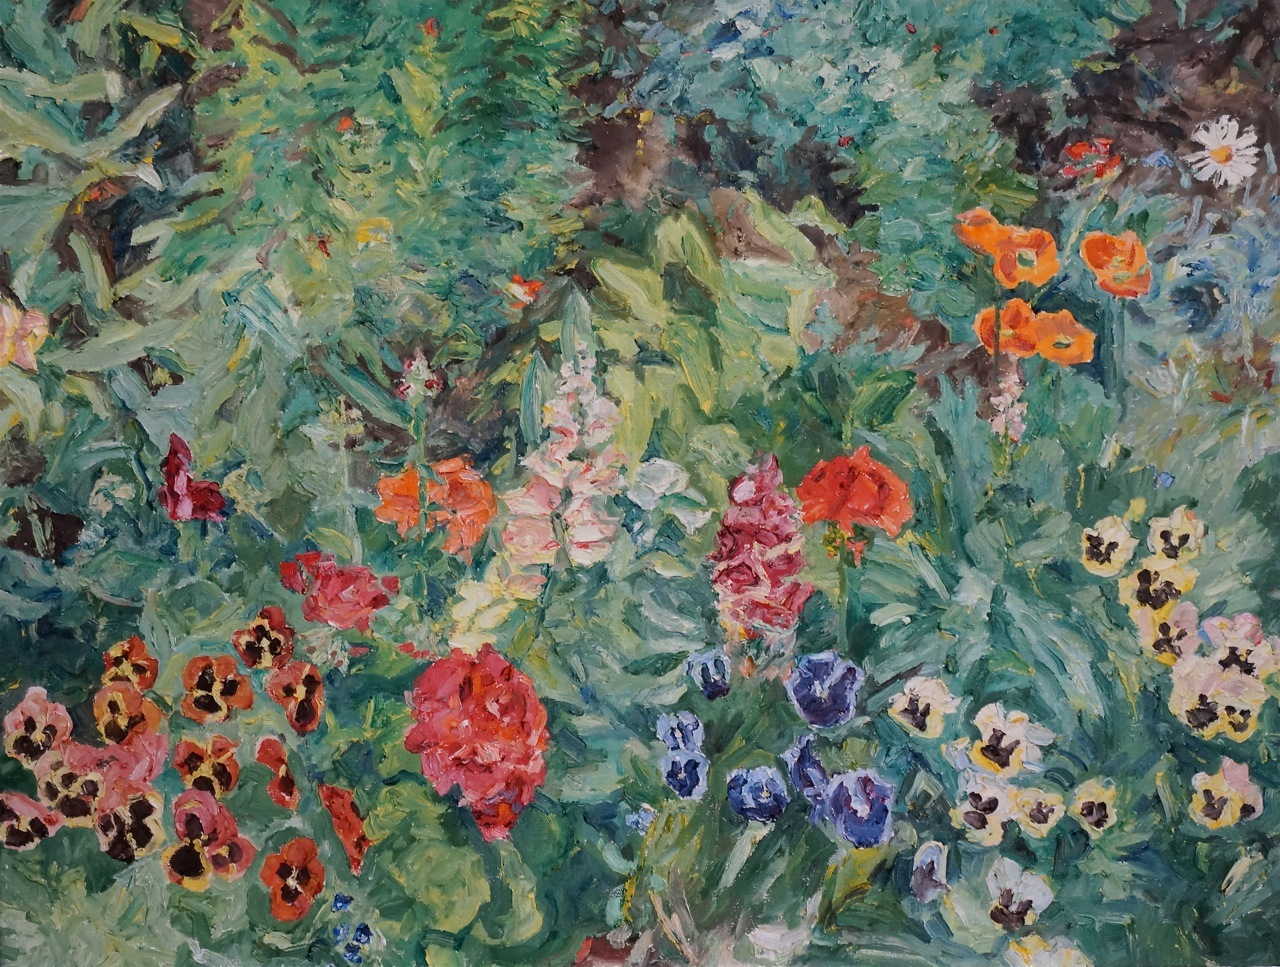 Canadian Landscapes by Dorothy Knowles Pansies in Bloom